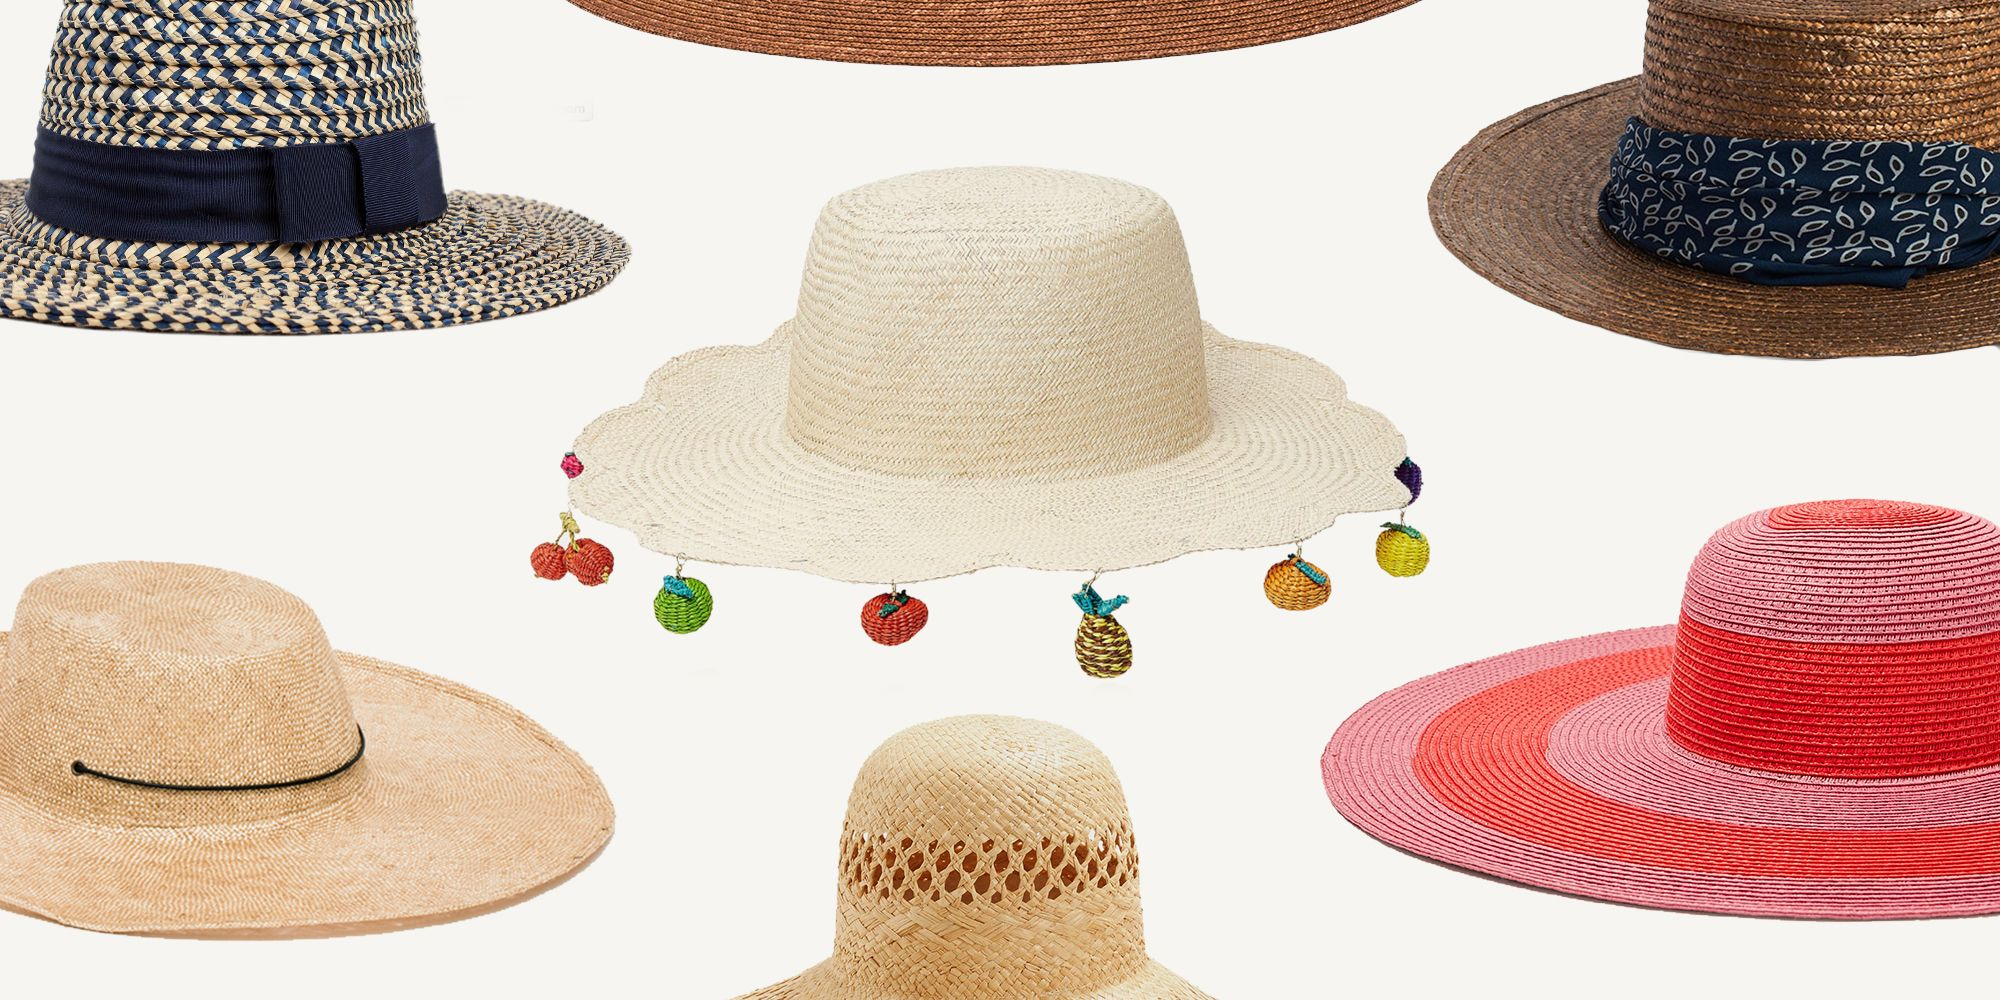 2e08b913d2a 15 Classic Straw Hats for Summer 2017 - Best Sun Hats to Wear to the Beach